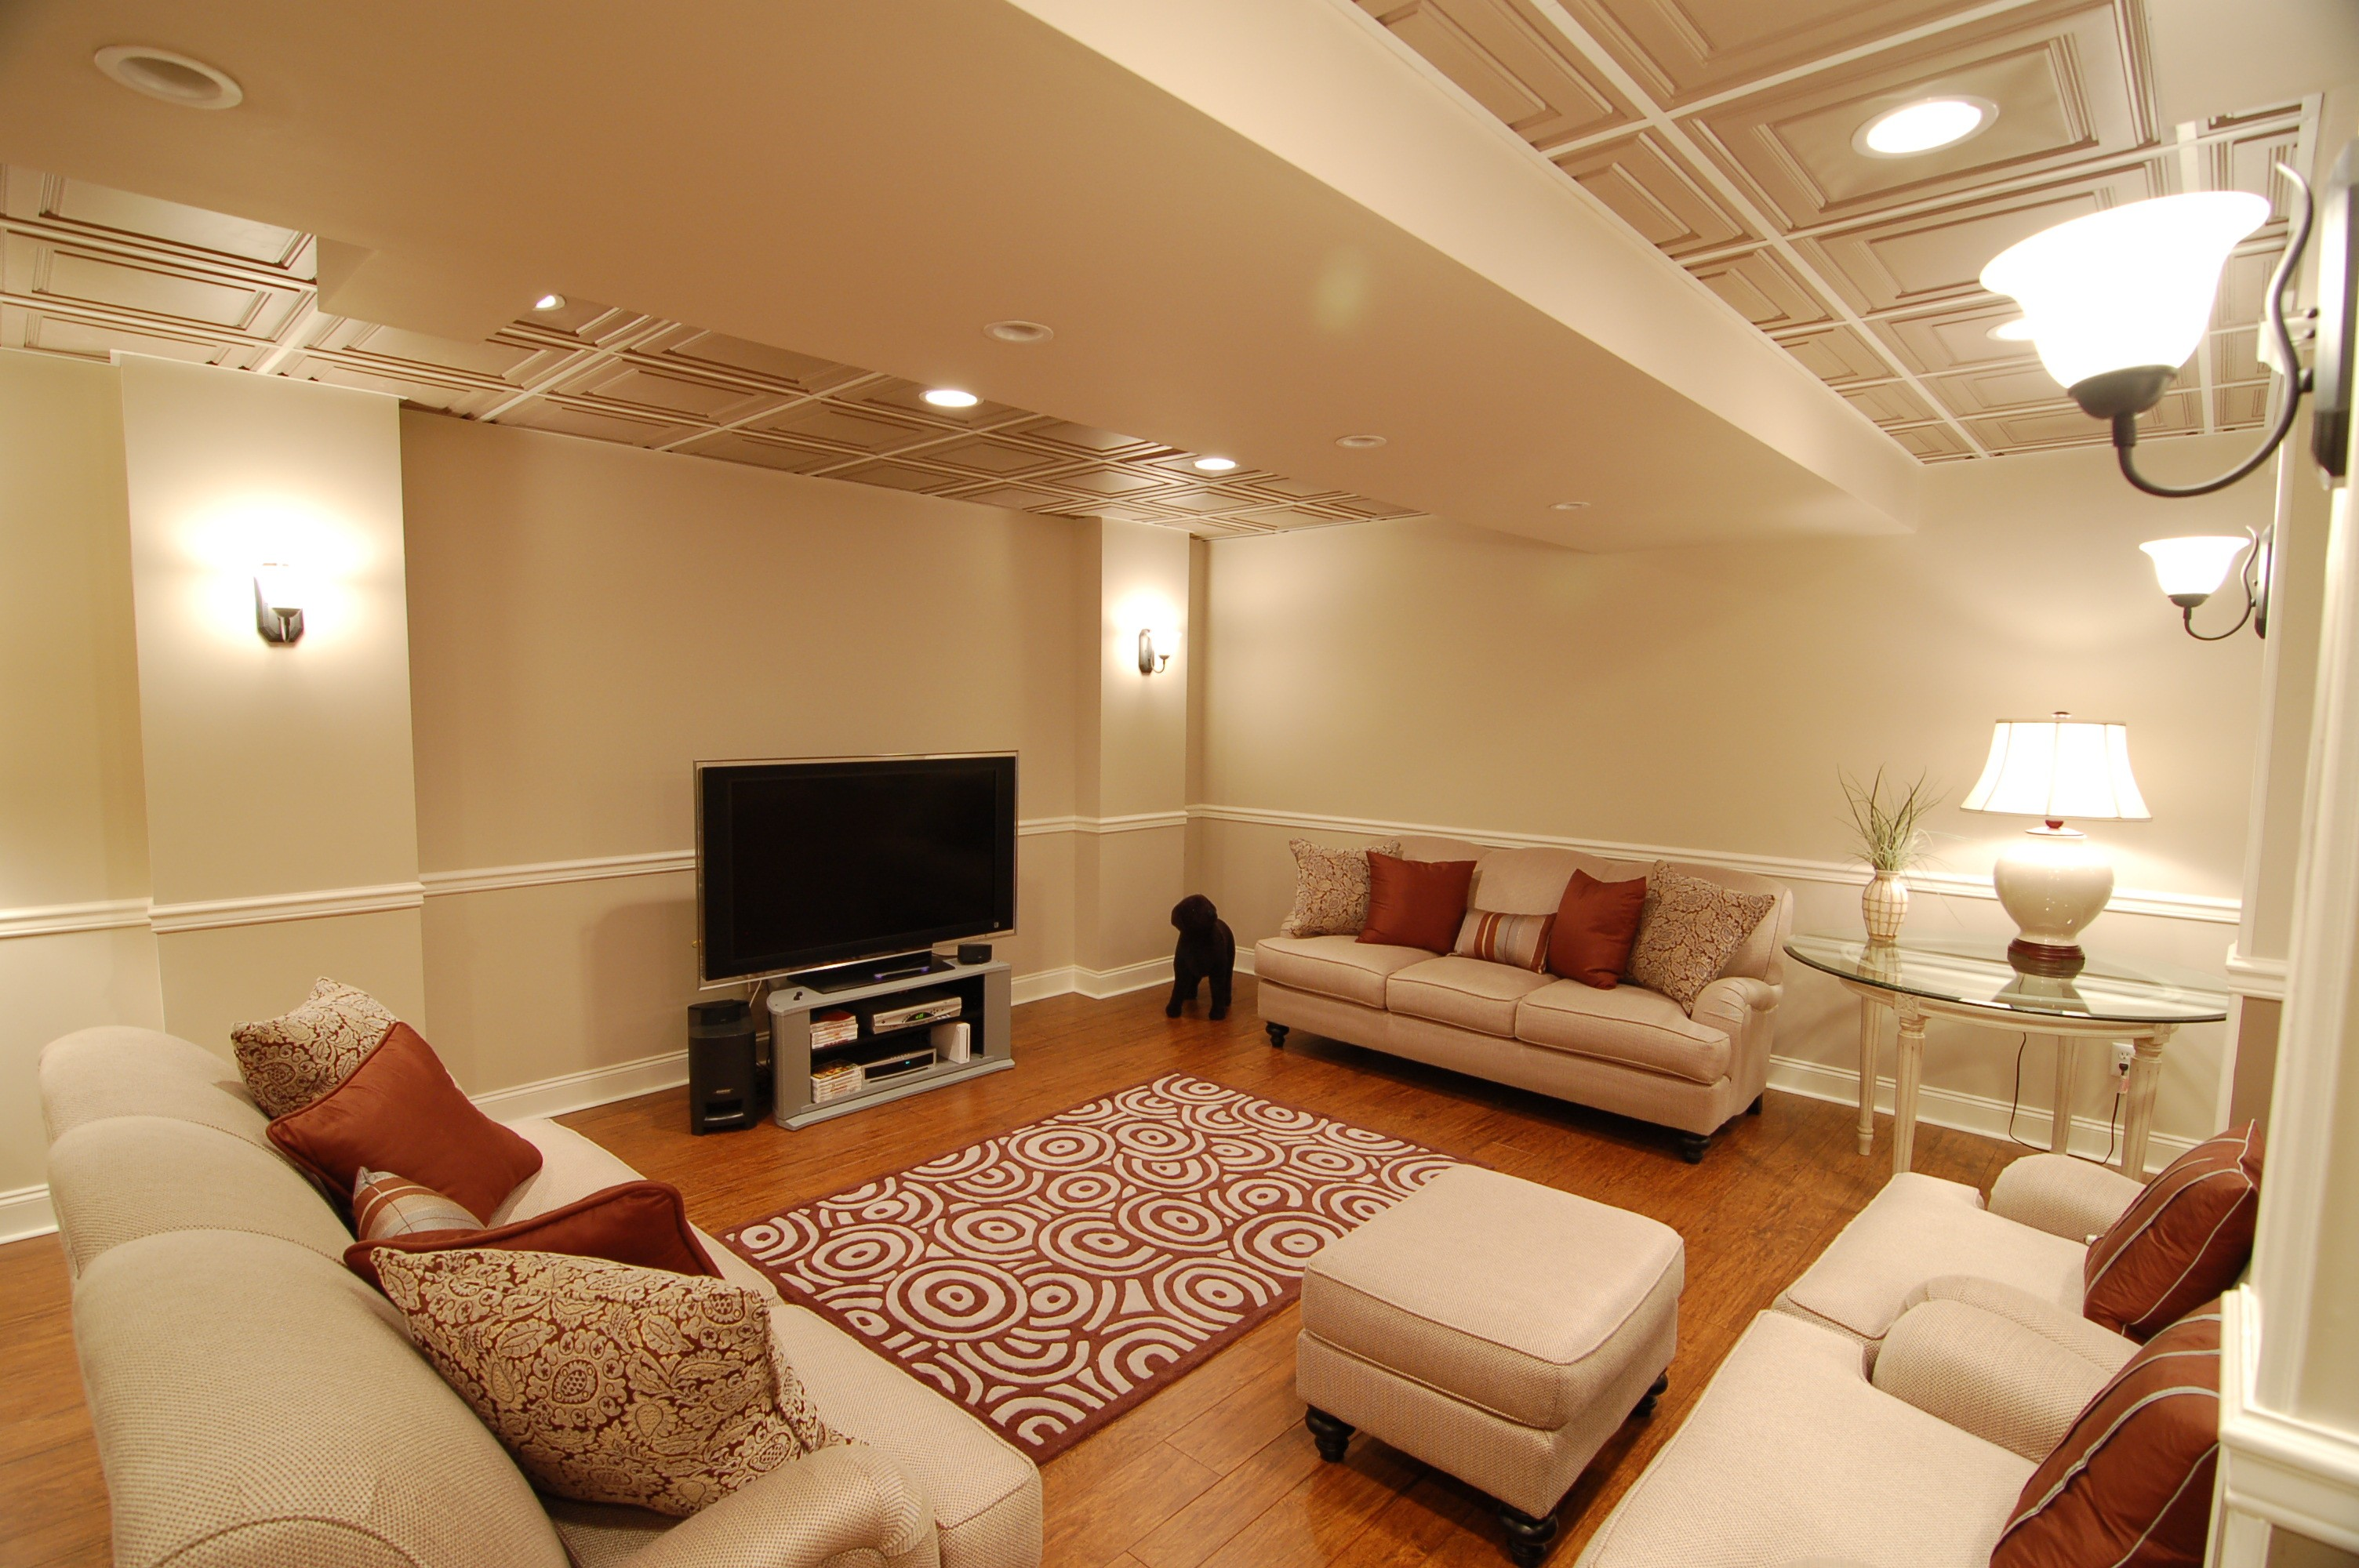 Remodeling Basement Ideas Nj Basement Remodeling Ideas For Your Dream Basement